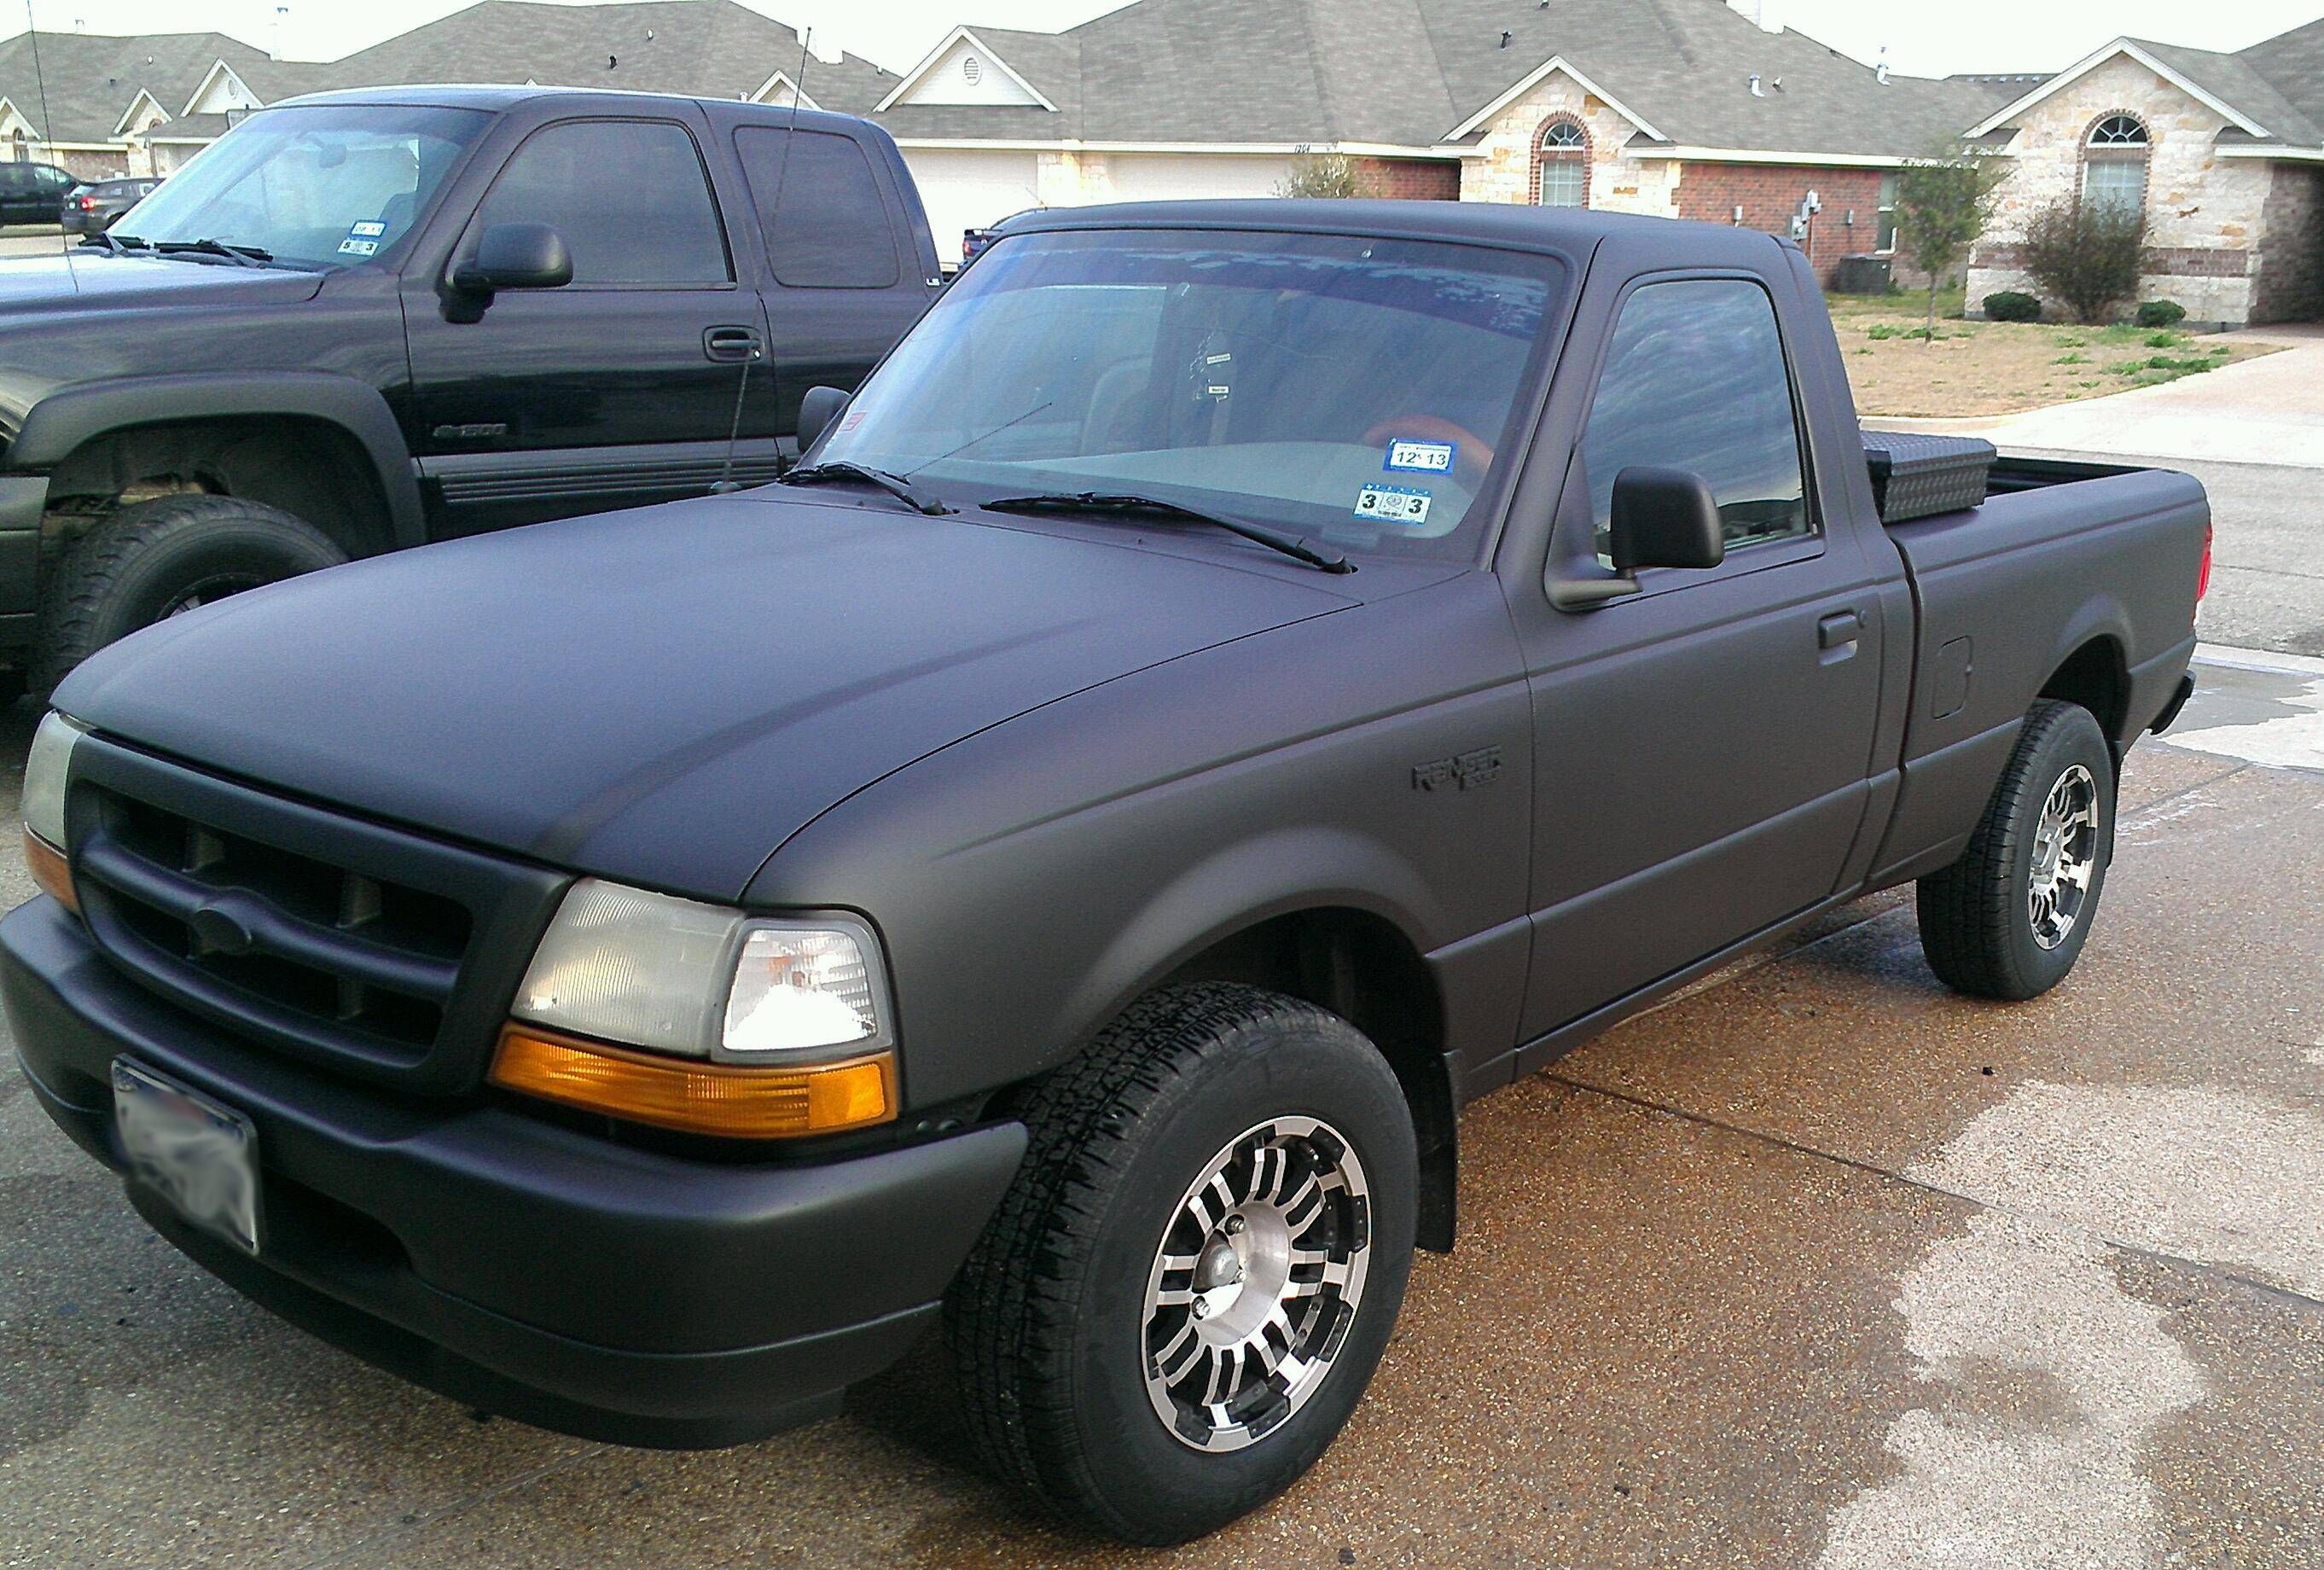 Sunday Project Plasti Dipped My Ford Ranger The Results Were Amazing Ford Ranger Plasti Dip Car Ranger